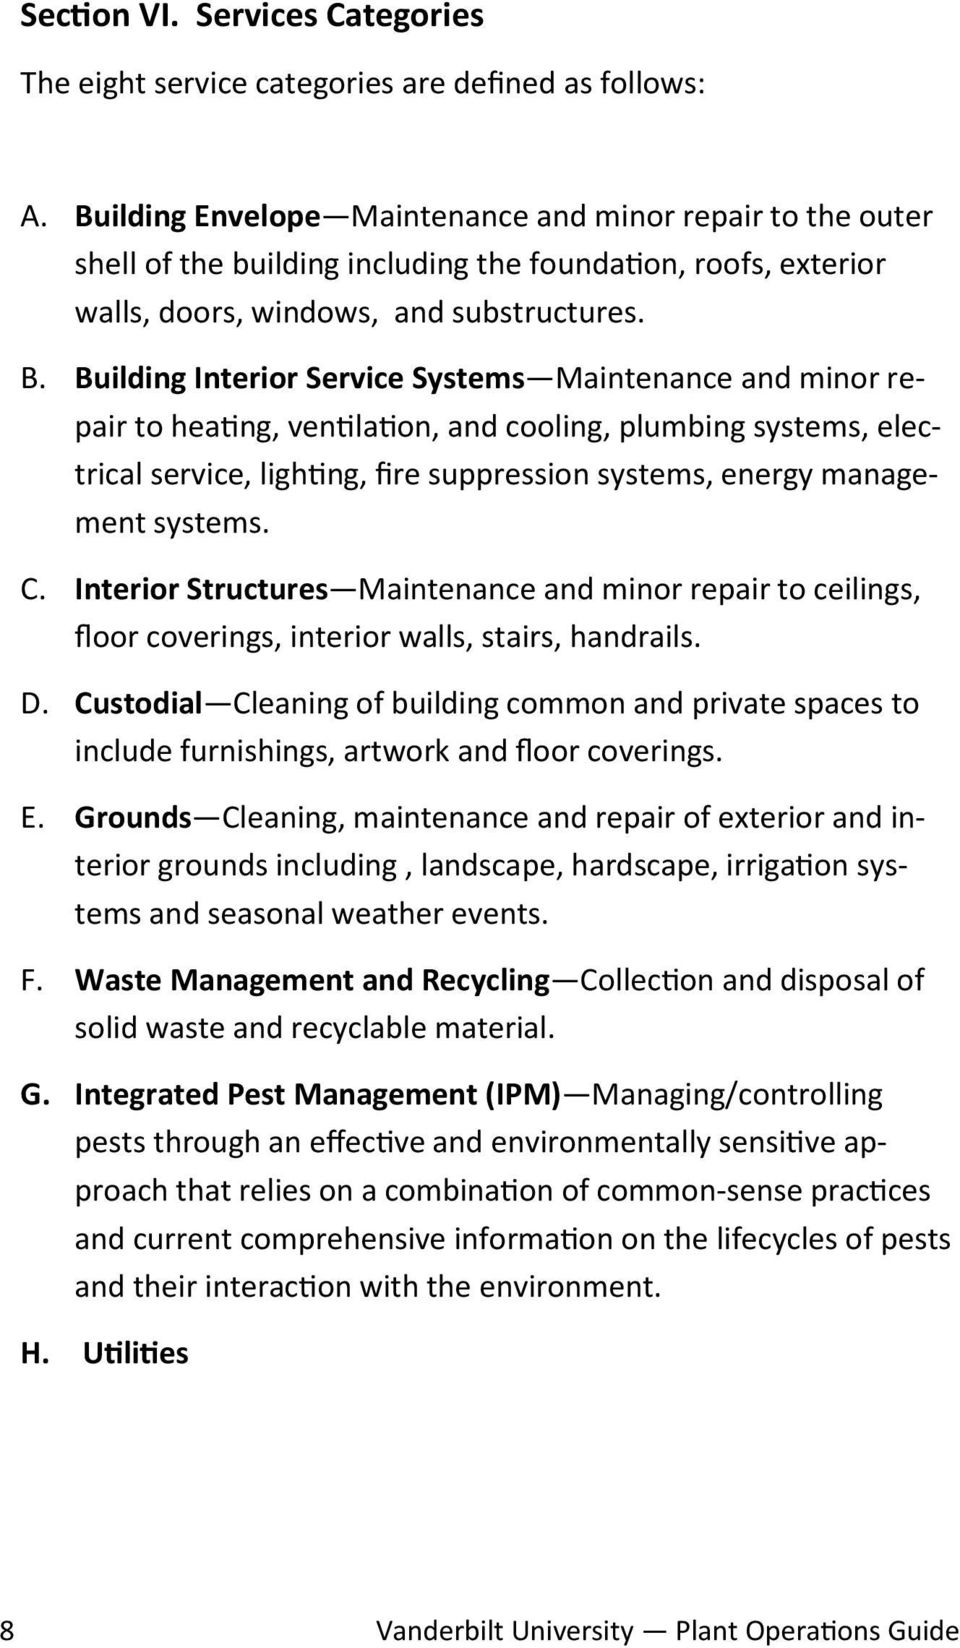 Building Interior Service Systems Maintenance and minor repair to heating, ventilation, and cooling, plumbing systems, electrical service, lighting, fire suppression systems, energy management